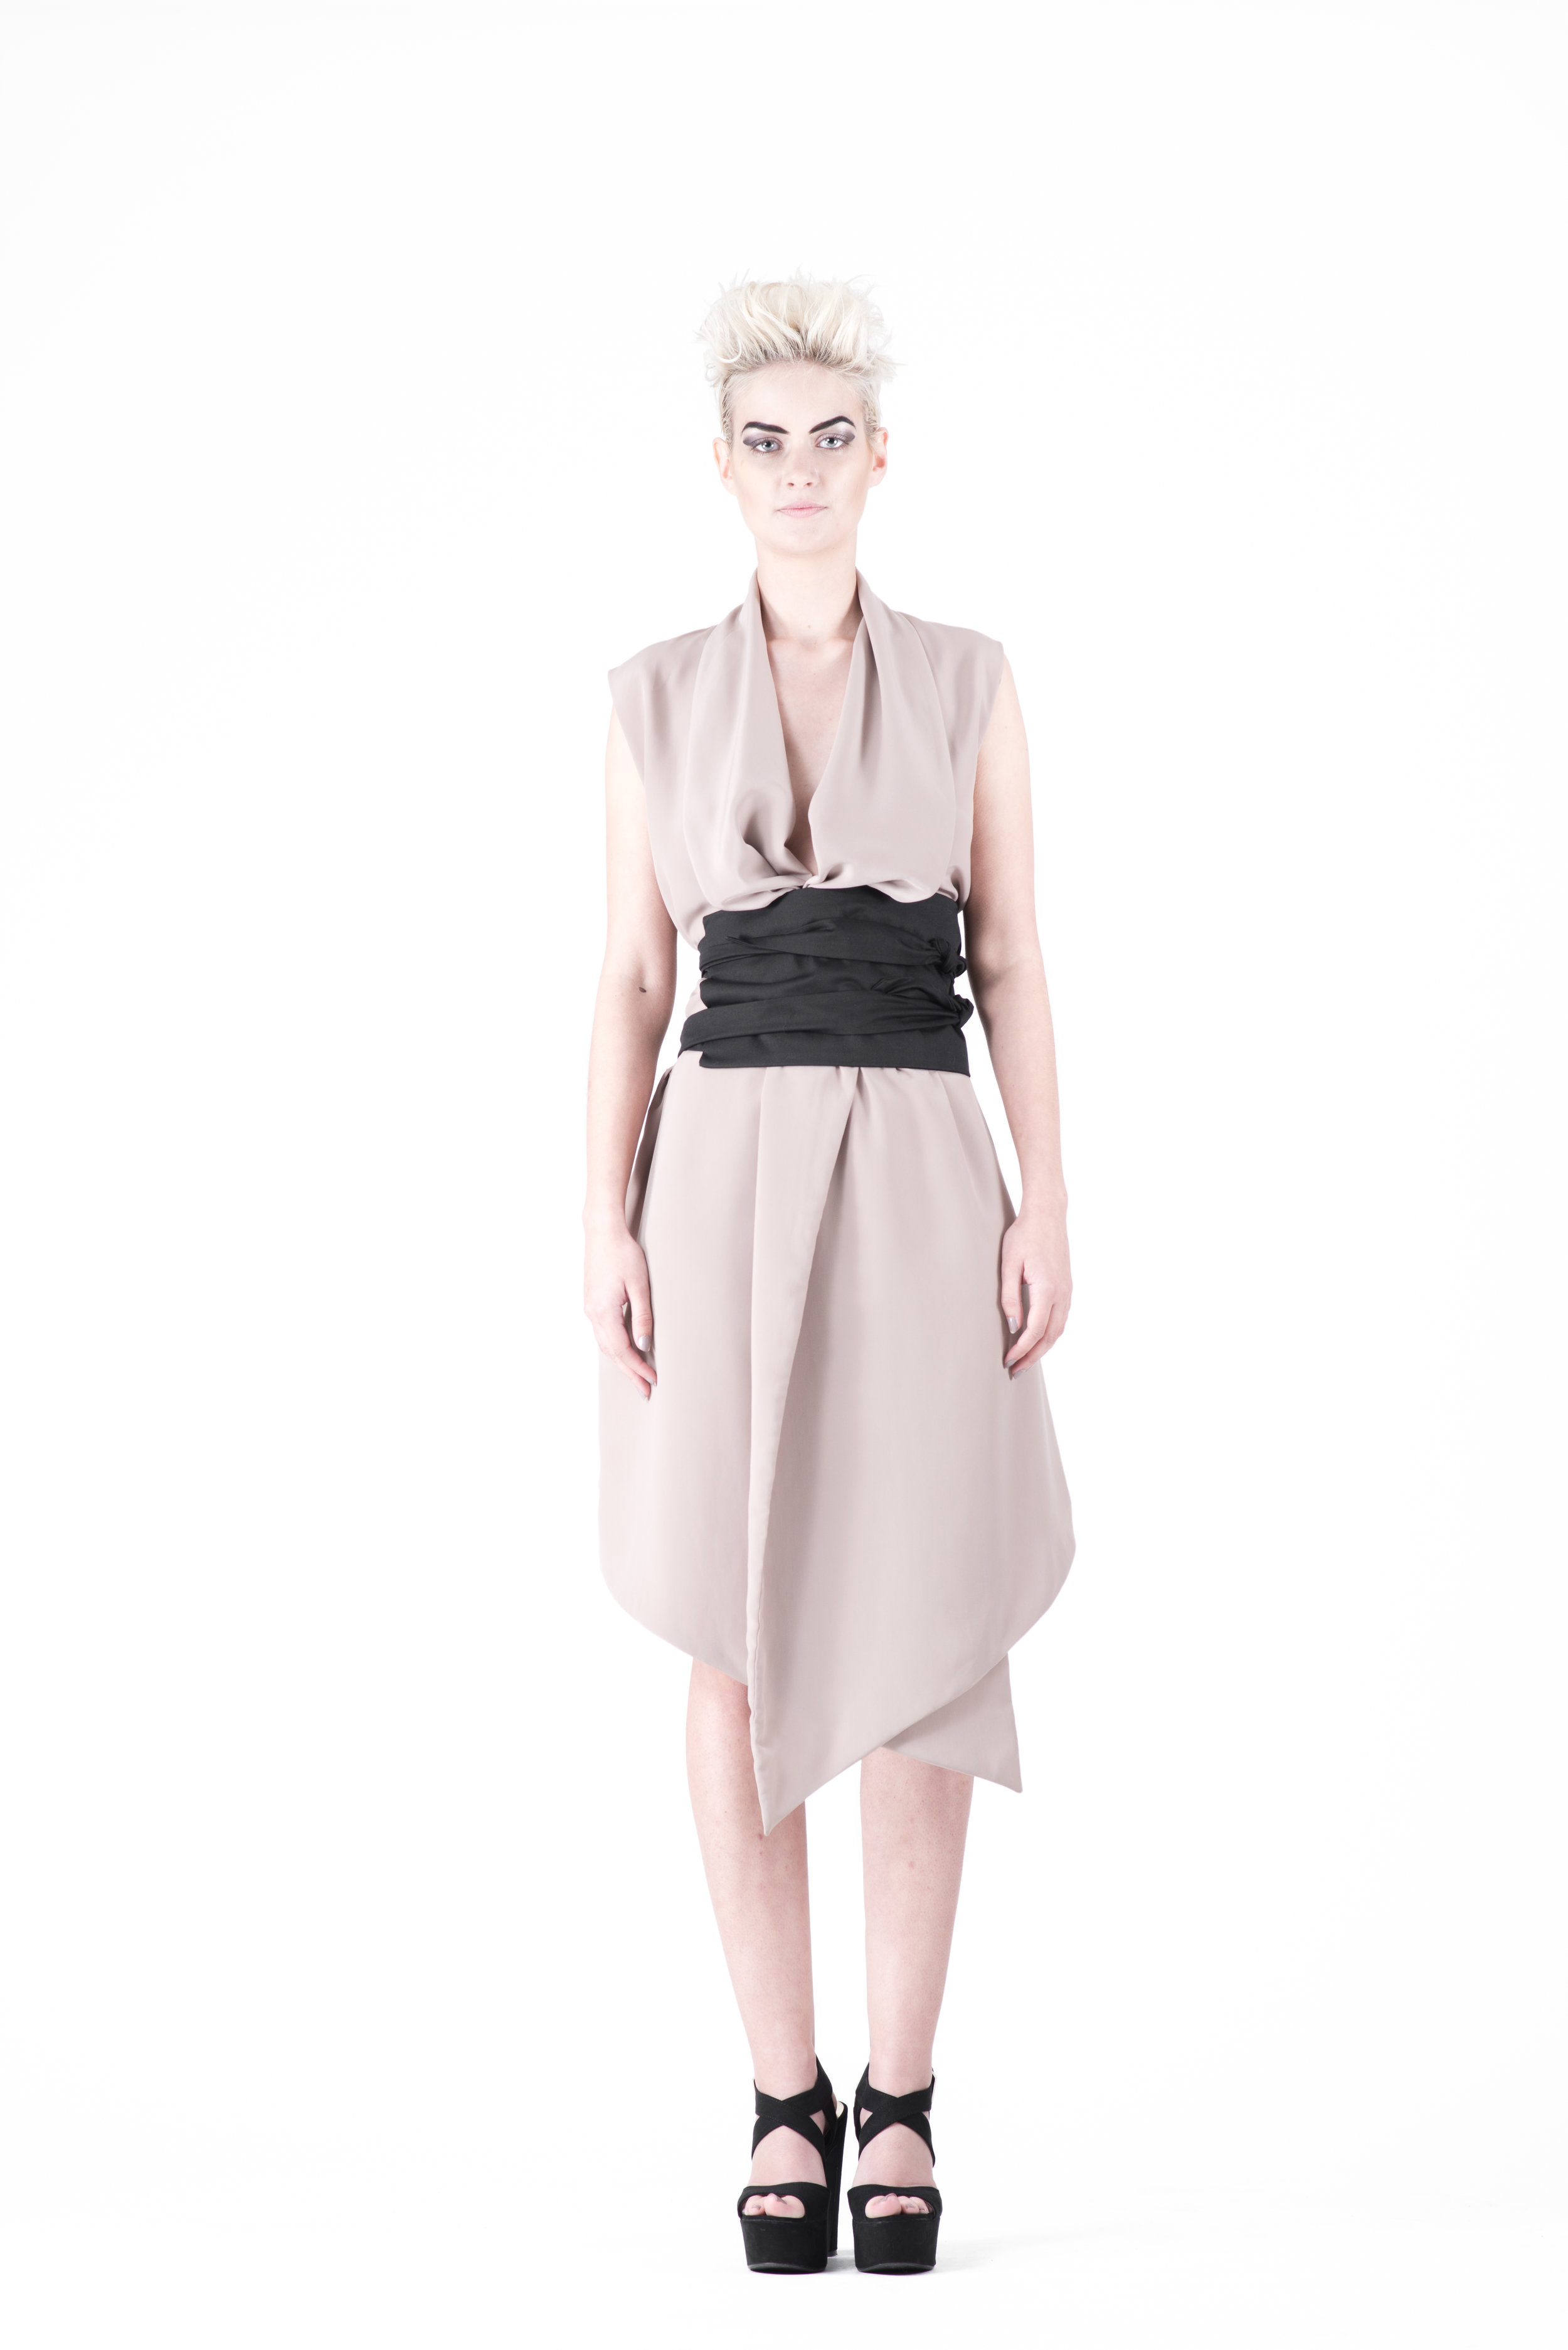 zaramia-ava-zaramiaava-leeds-fashion-designer-ethical-sustainable-tailored-minimalist-emi-nude-dress-obi-belt-black-versatile-drape-cowl-styling-womenswear-models-photoshoot-37